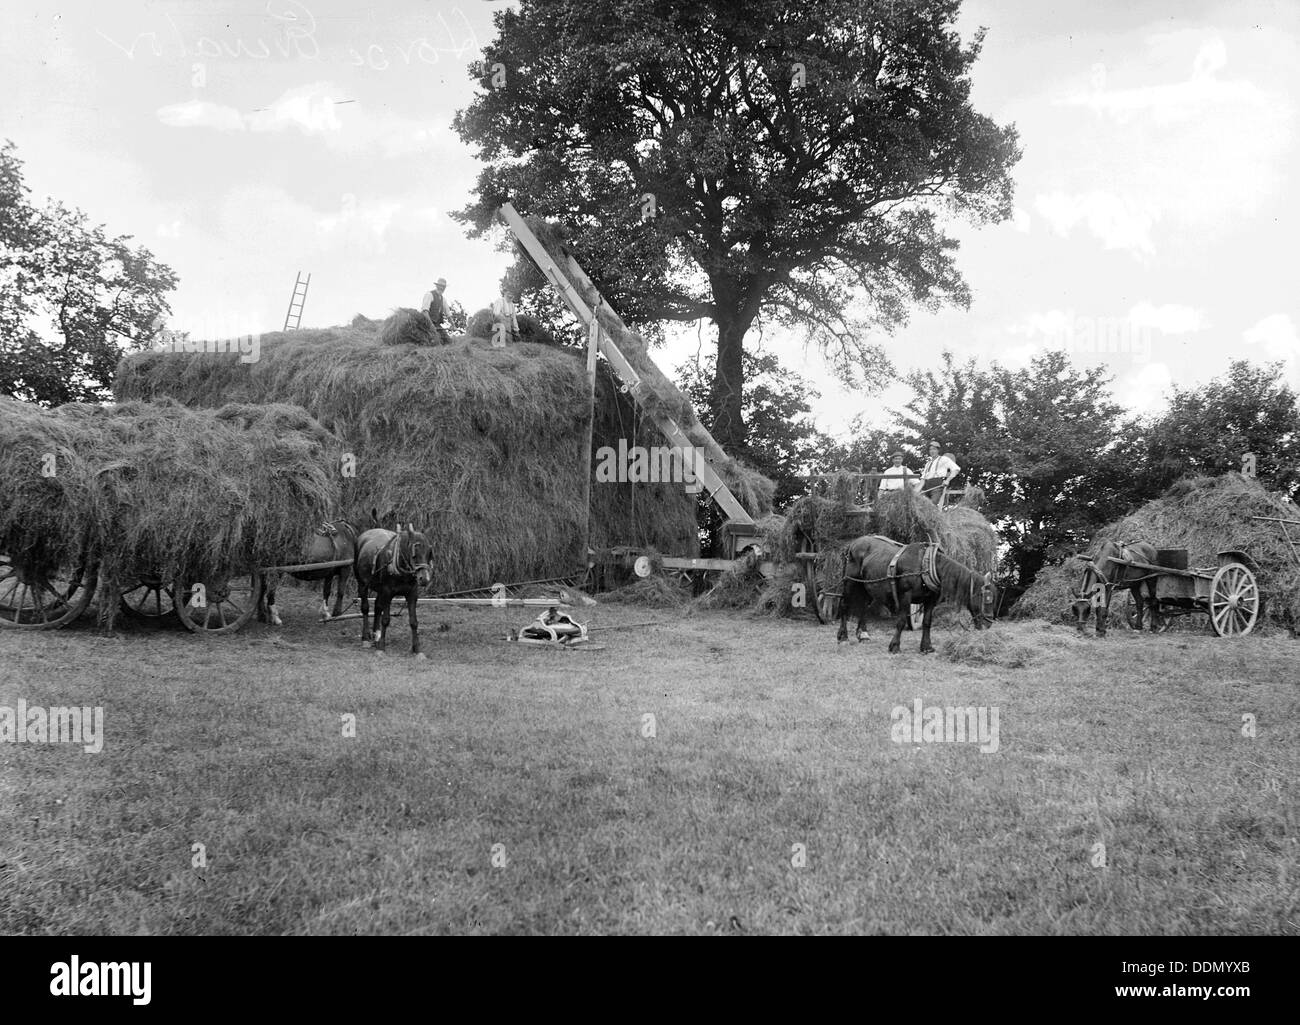 Men piling hay using a horse powered elevator, Stanford in the Vale, Oxfordshire, c1860-c1922. Artist: Henry Taunt - Stock Image